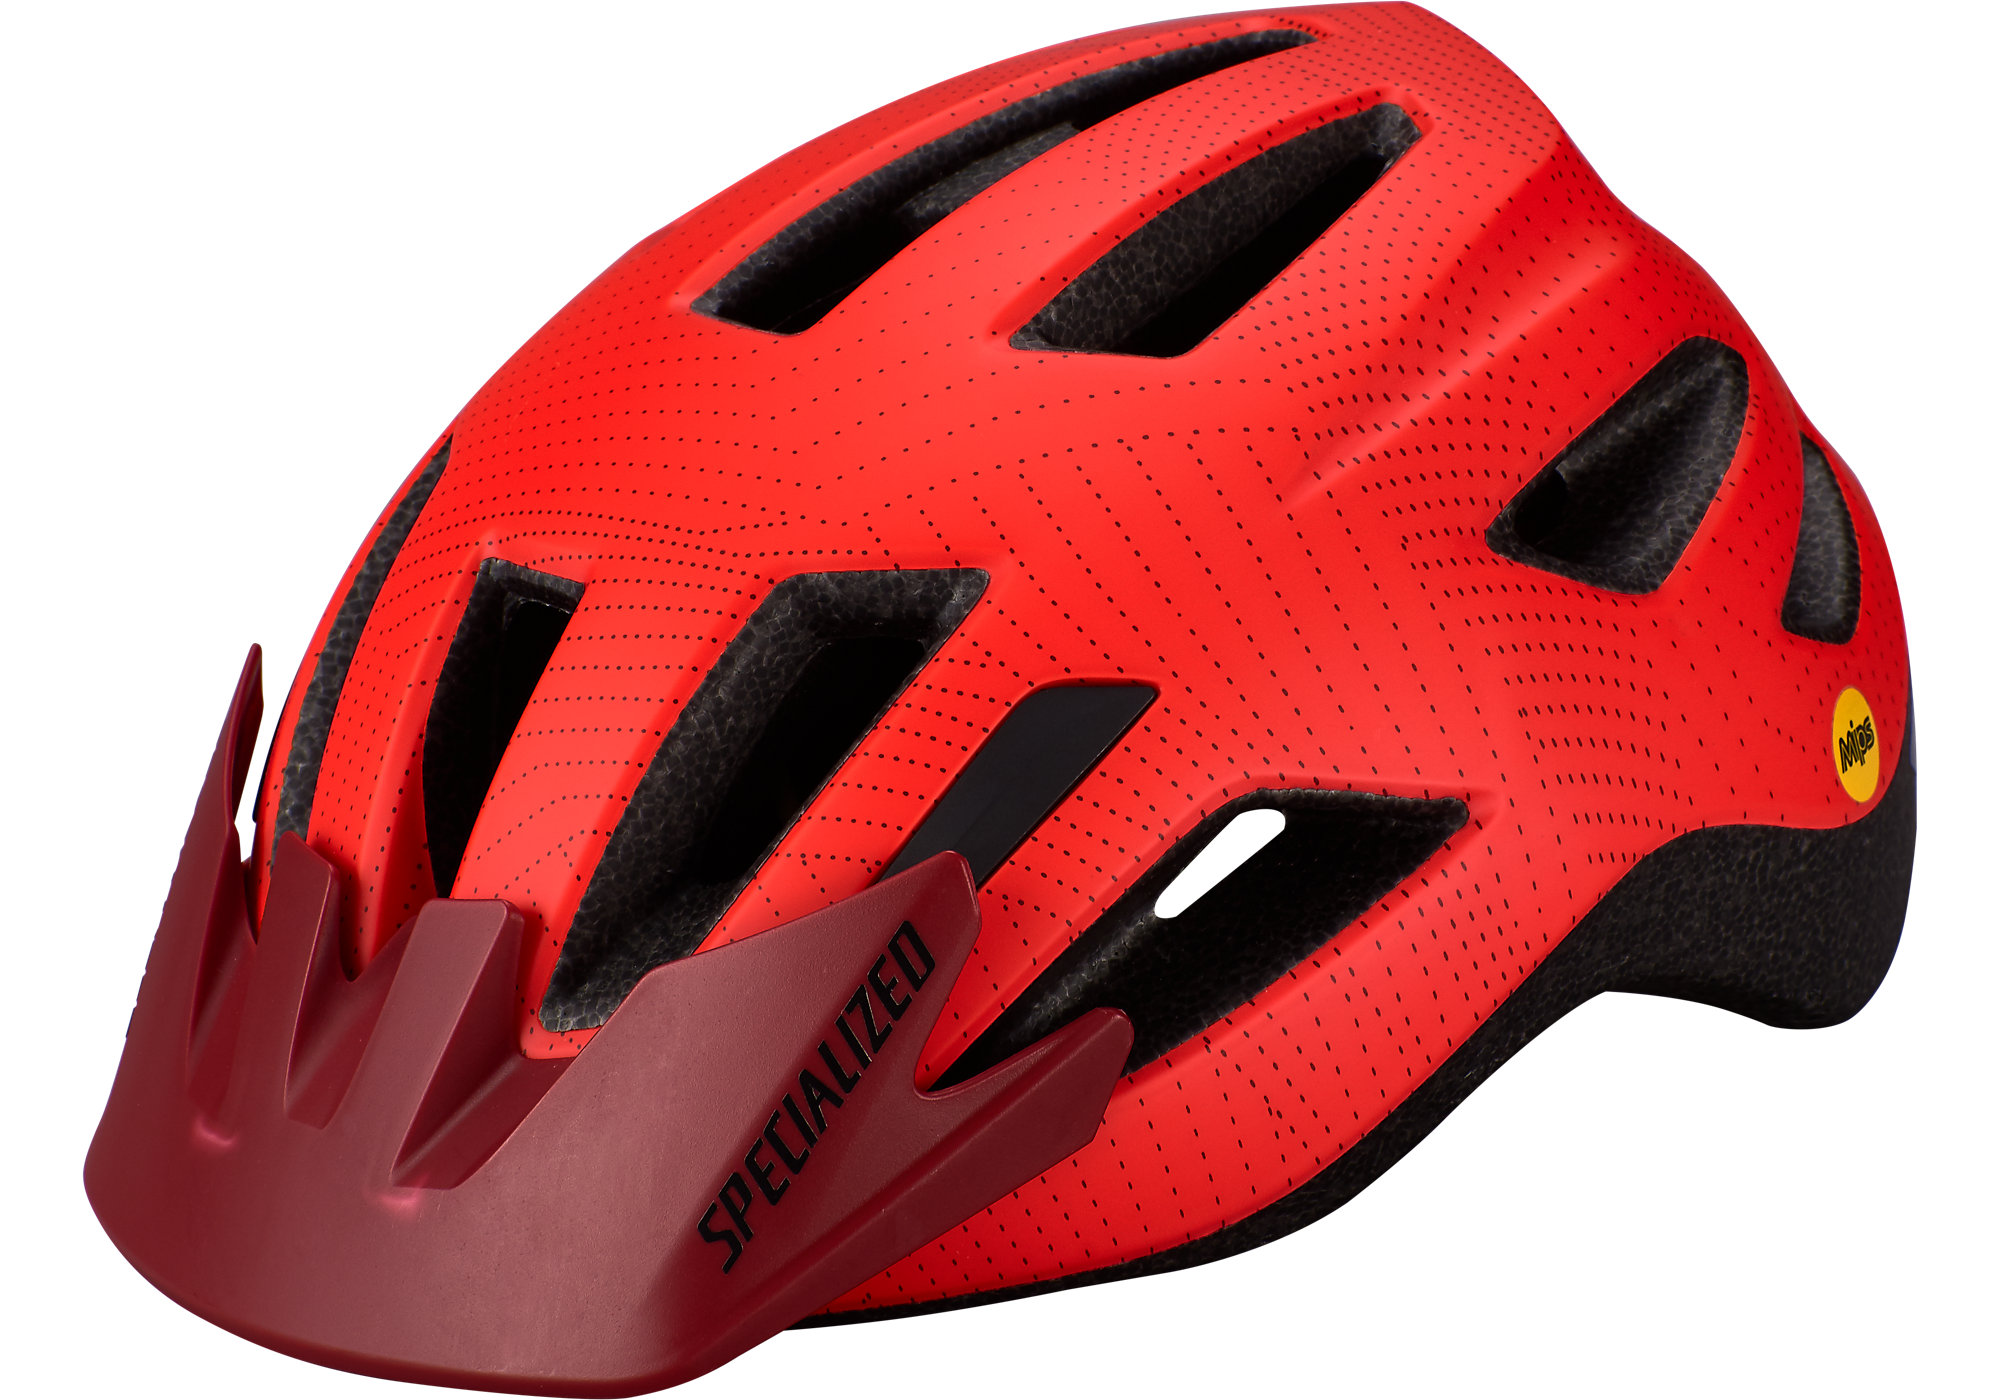 2020 Specialized Shuffle Led Mips Childs Helmet In Red 163 45 00